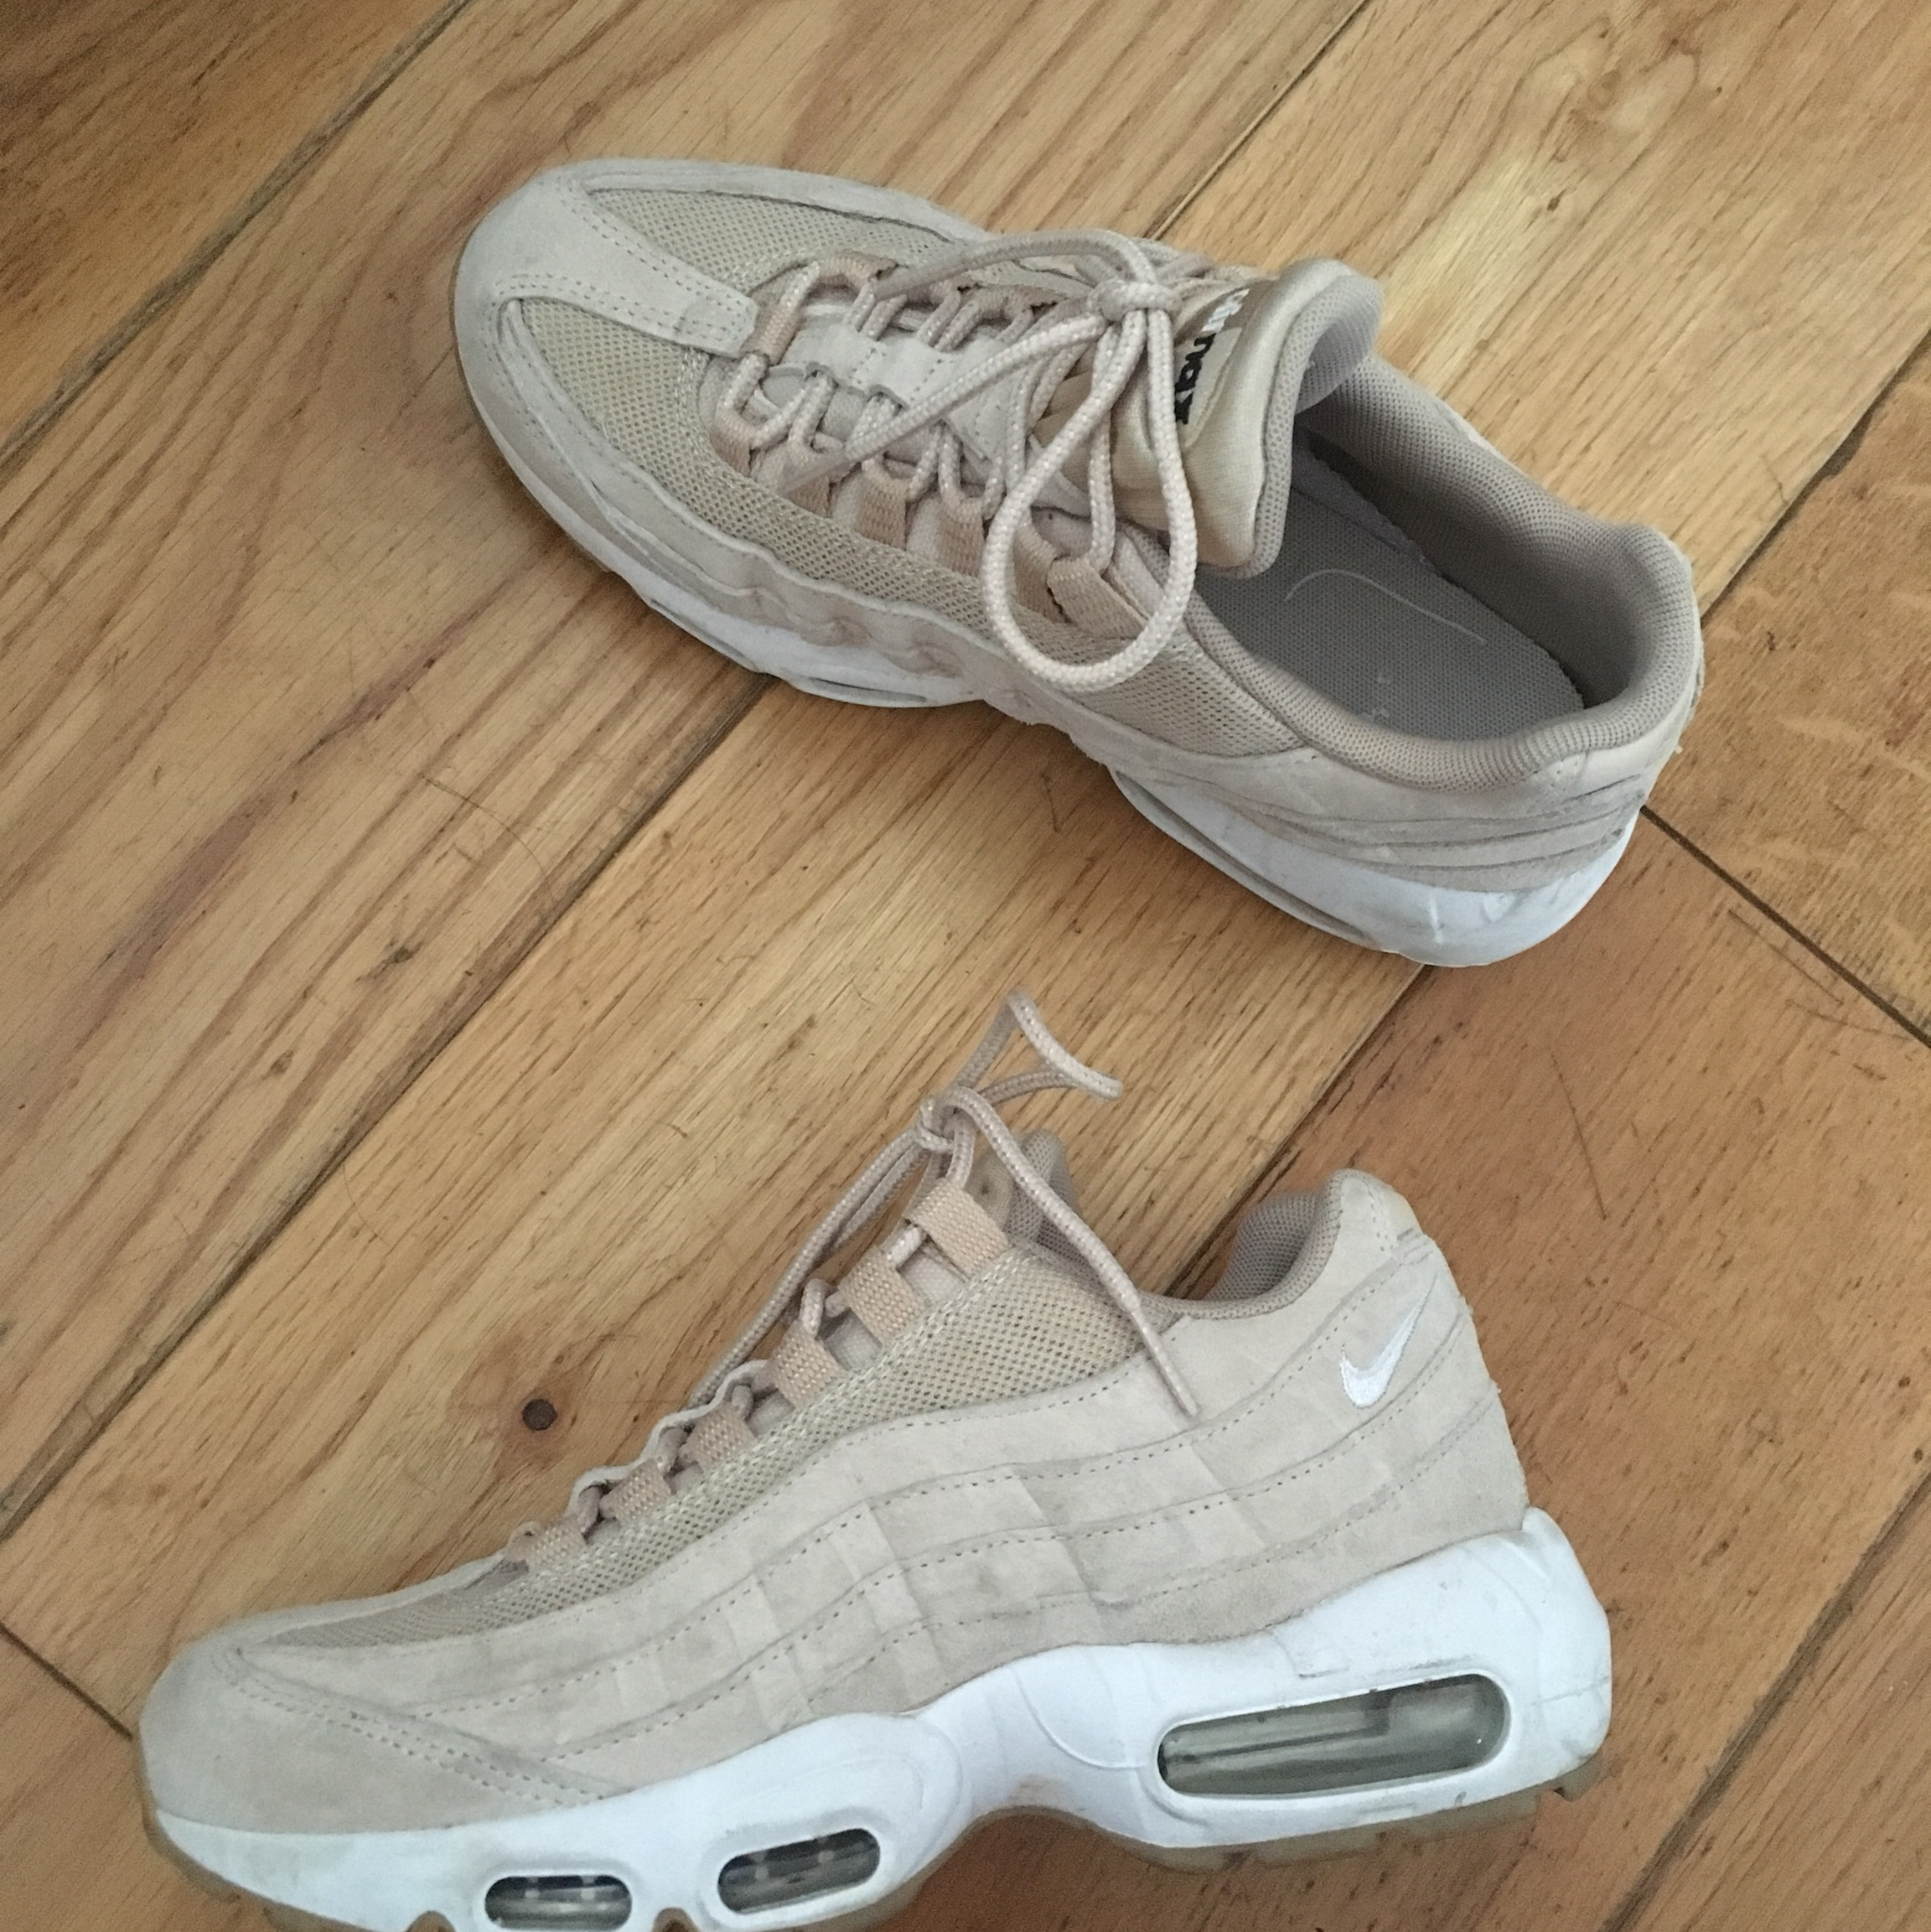 Nike, Air Max 95, Oatmeal White, New. Worn just couple...